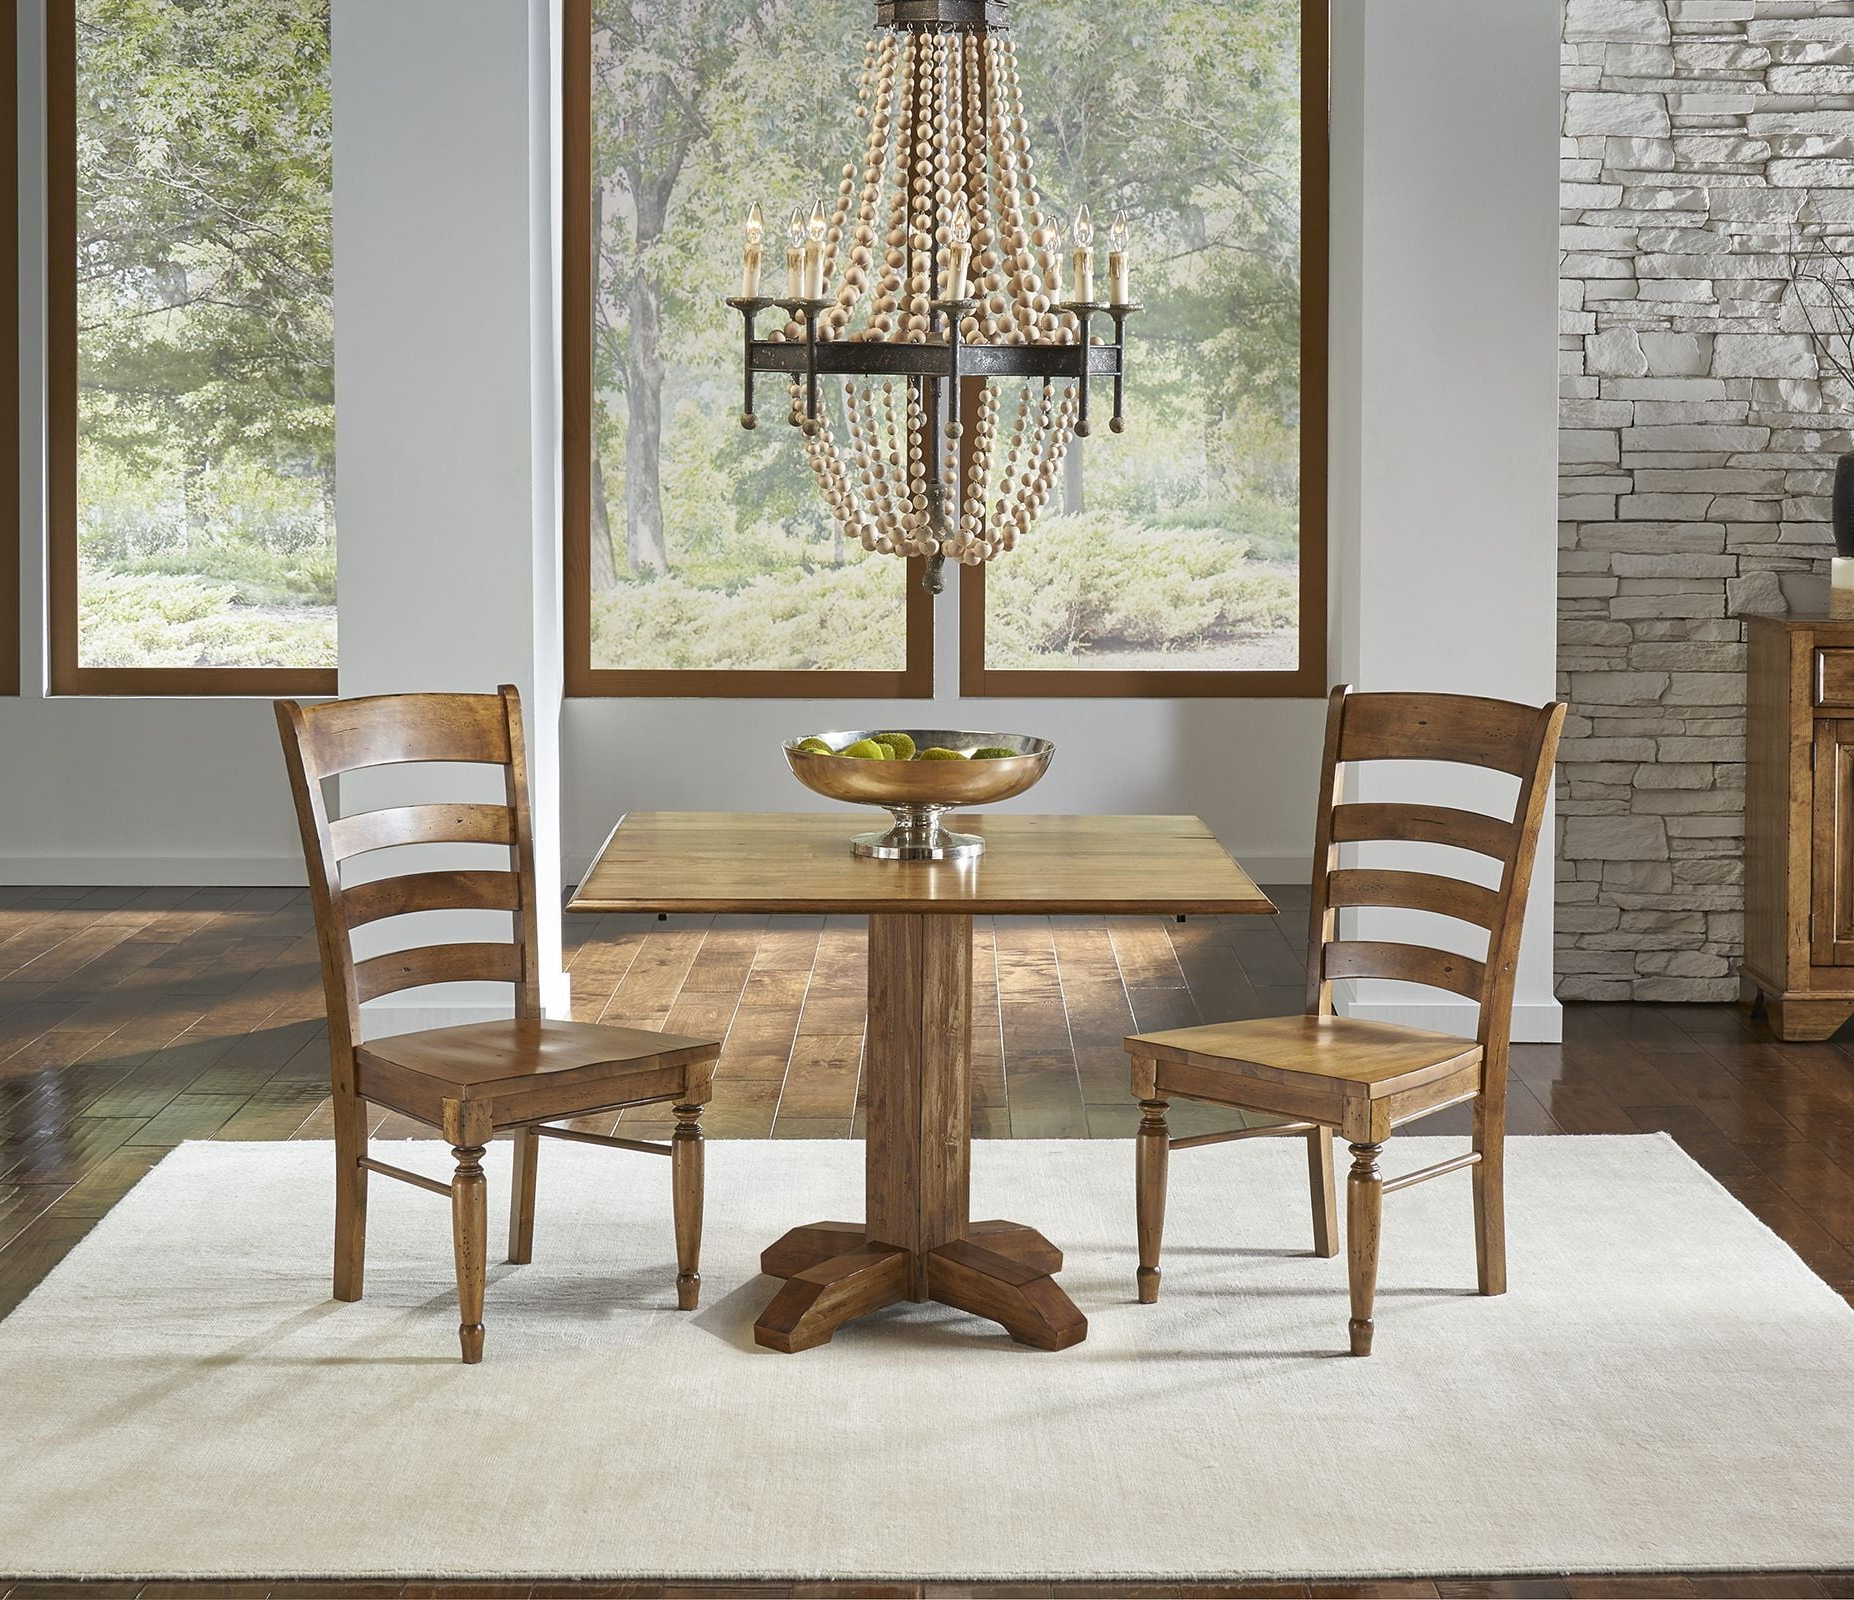 "Best and Newest Transitional 4-Seating Double Drop Leaf Casual Dining Tables in Bennett Smoky Quartz 42"" Drop Leaf Square Dining Table"